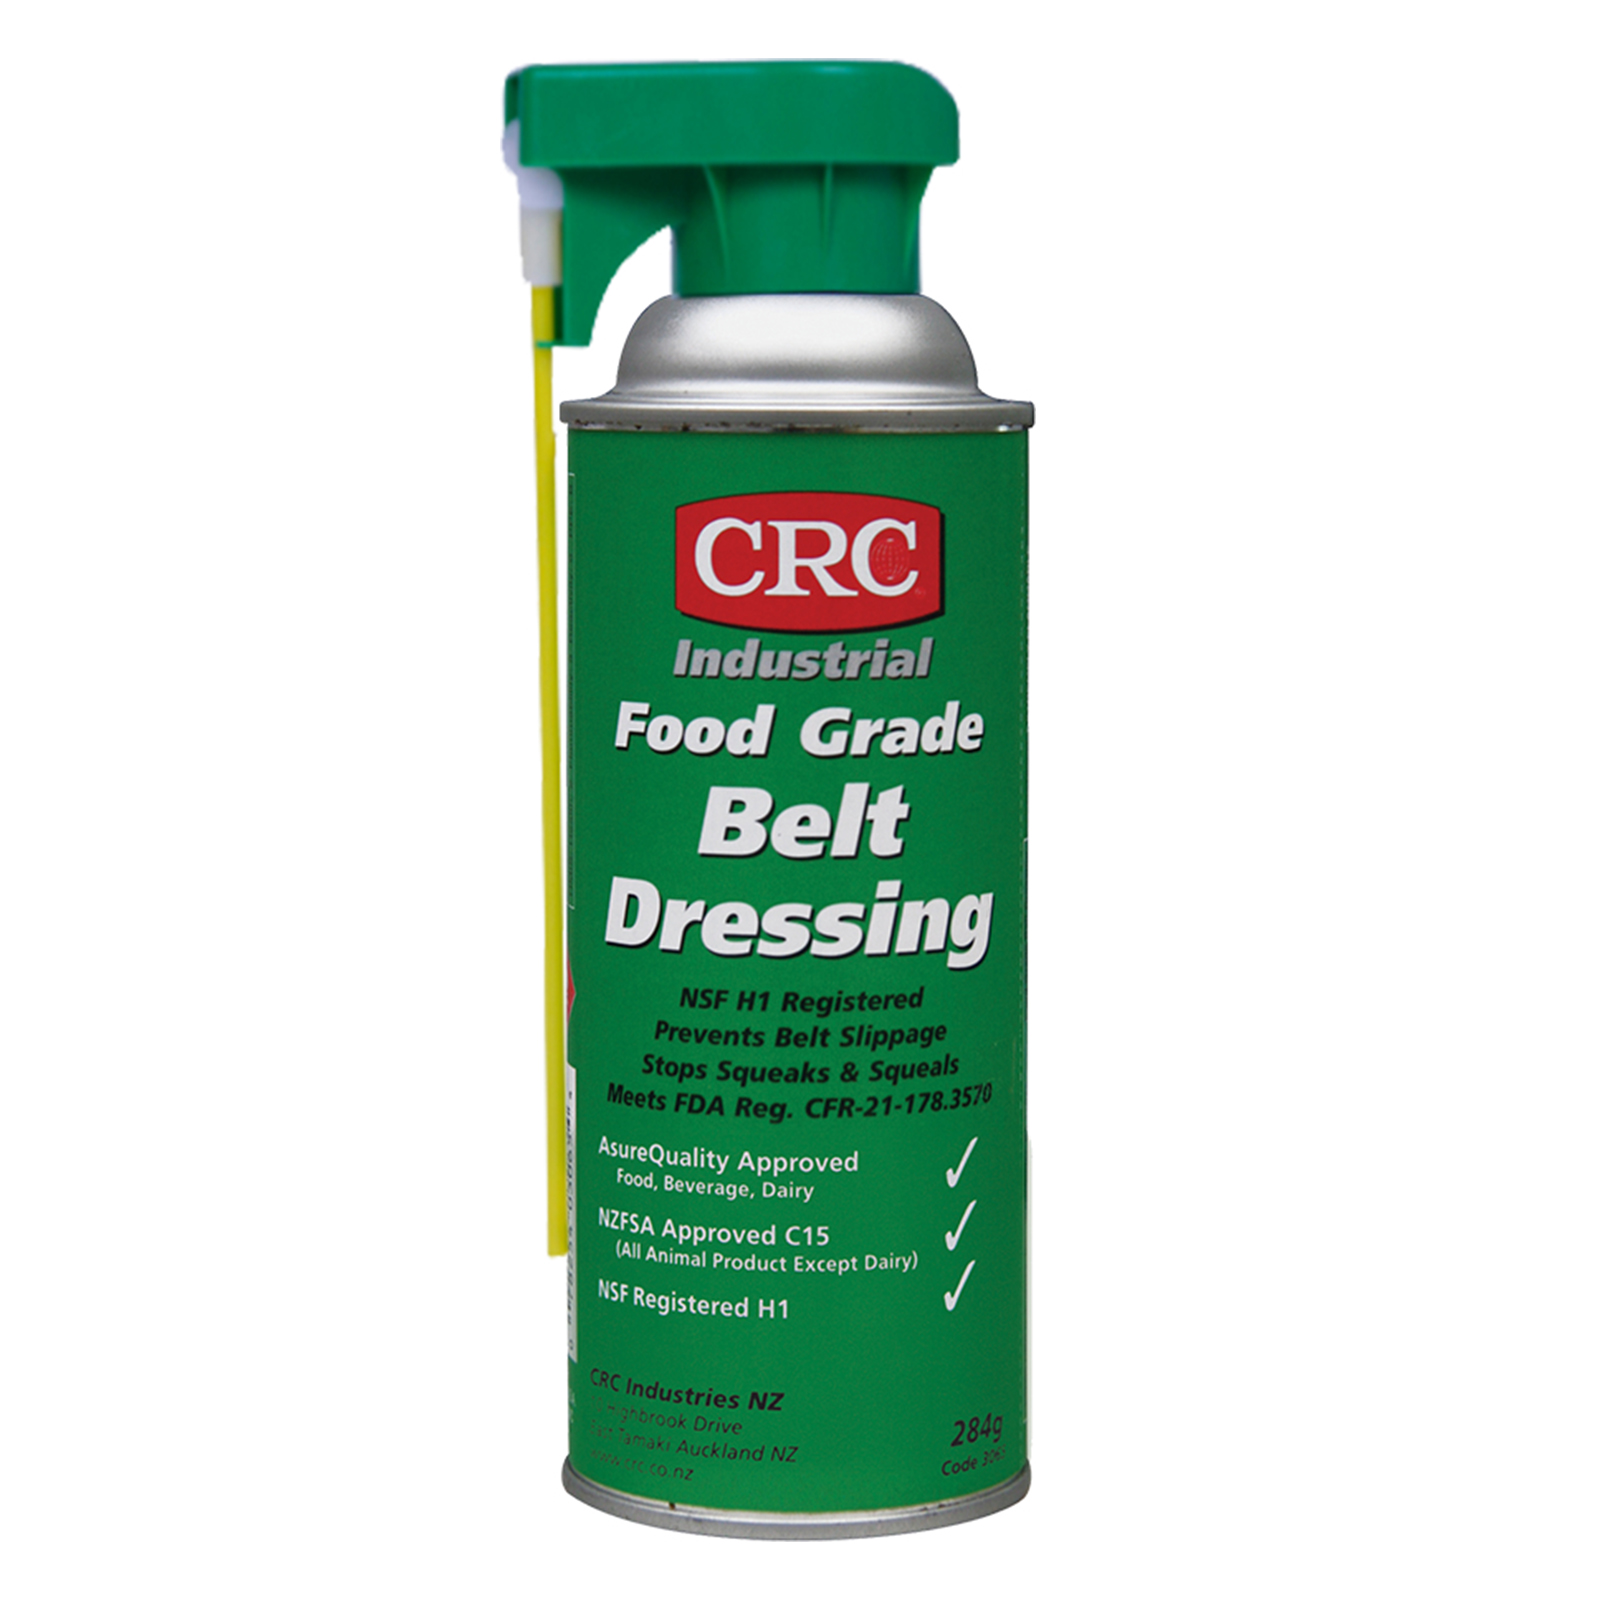 Prestone belt dressing sds